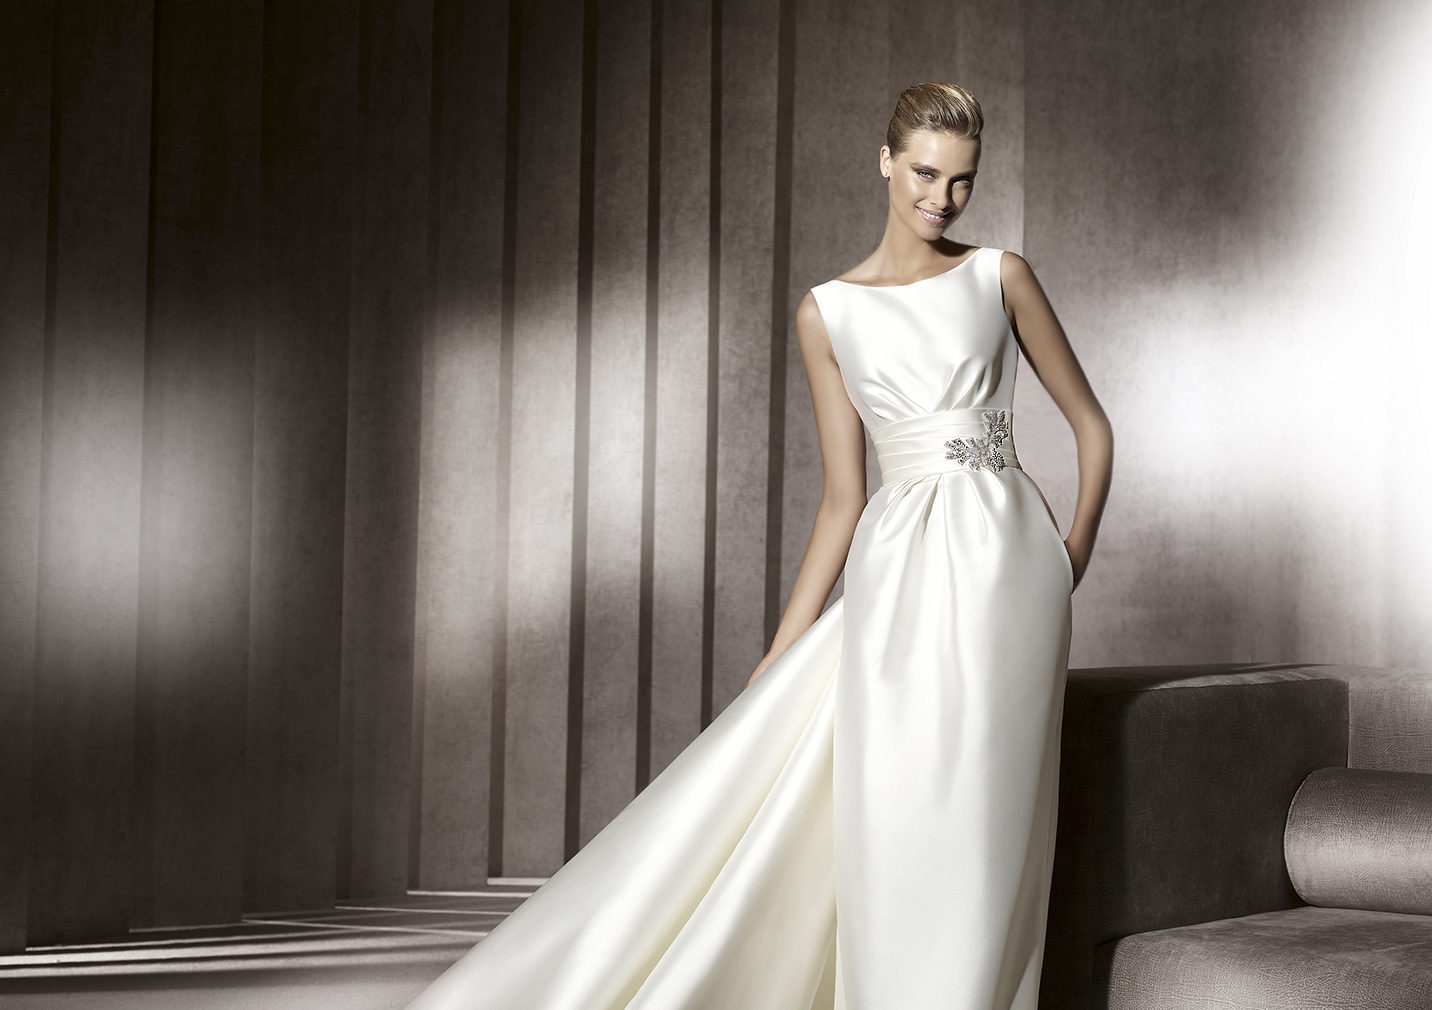 How To Embellish Simple Wedding Dresses?